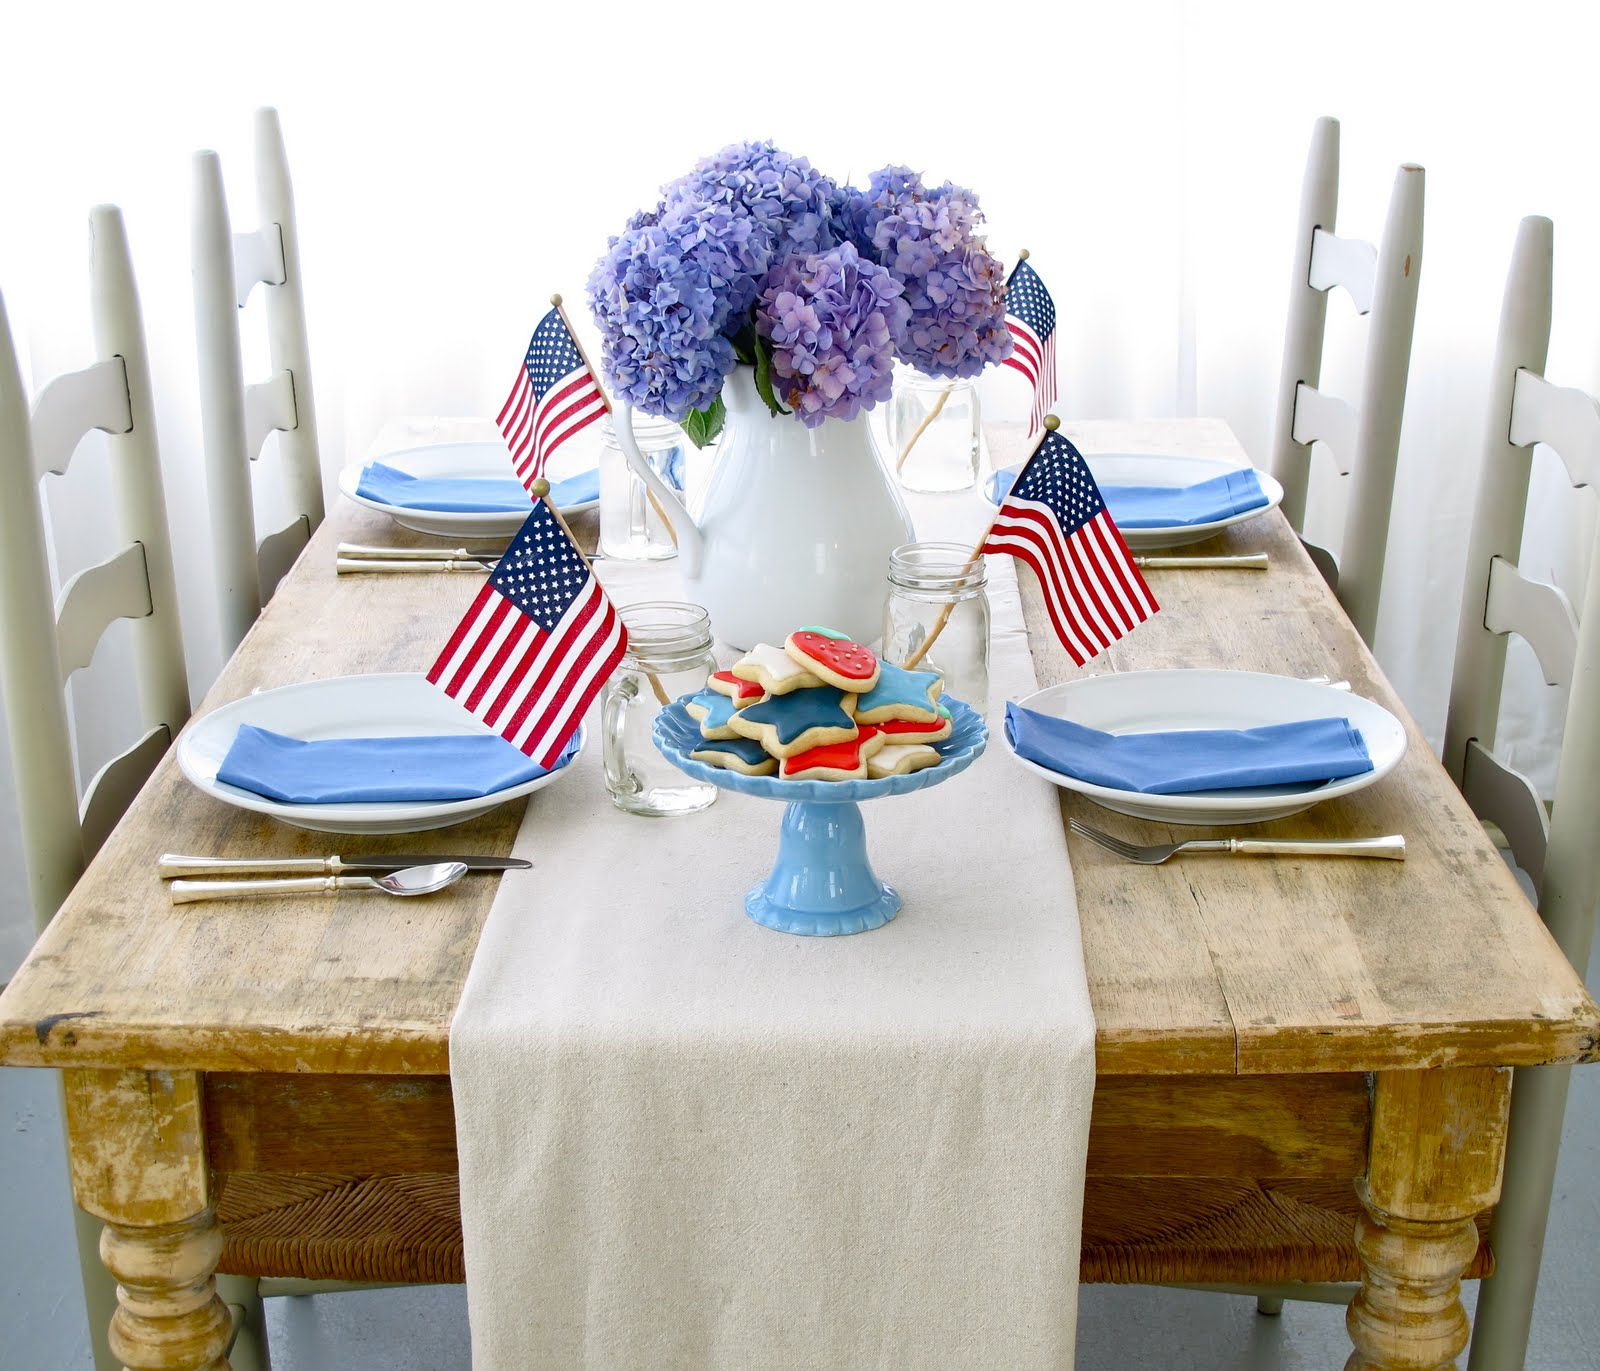 Jenny steffens hobick my favorite 4th of july recipes for 4th of july party decoration